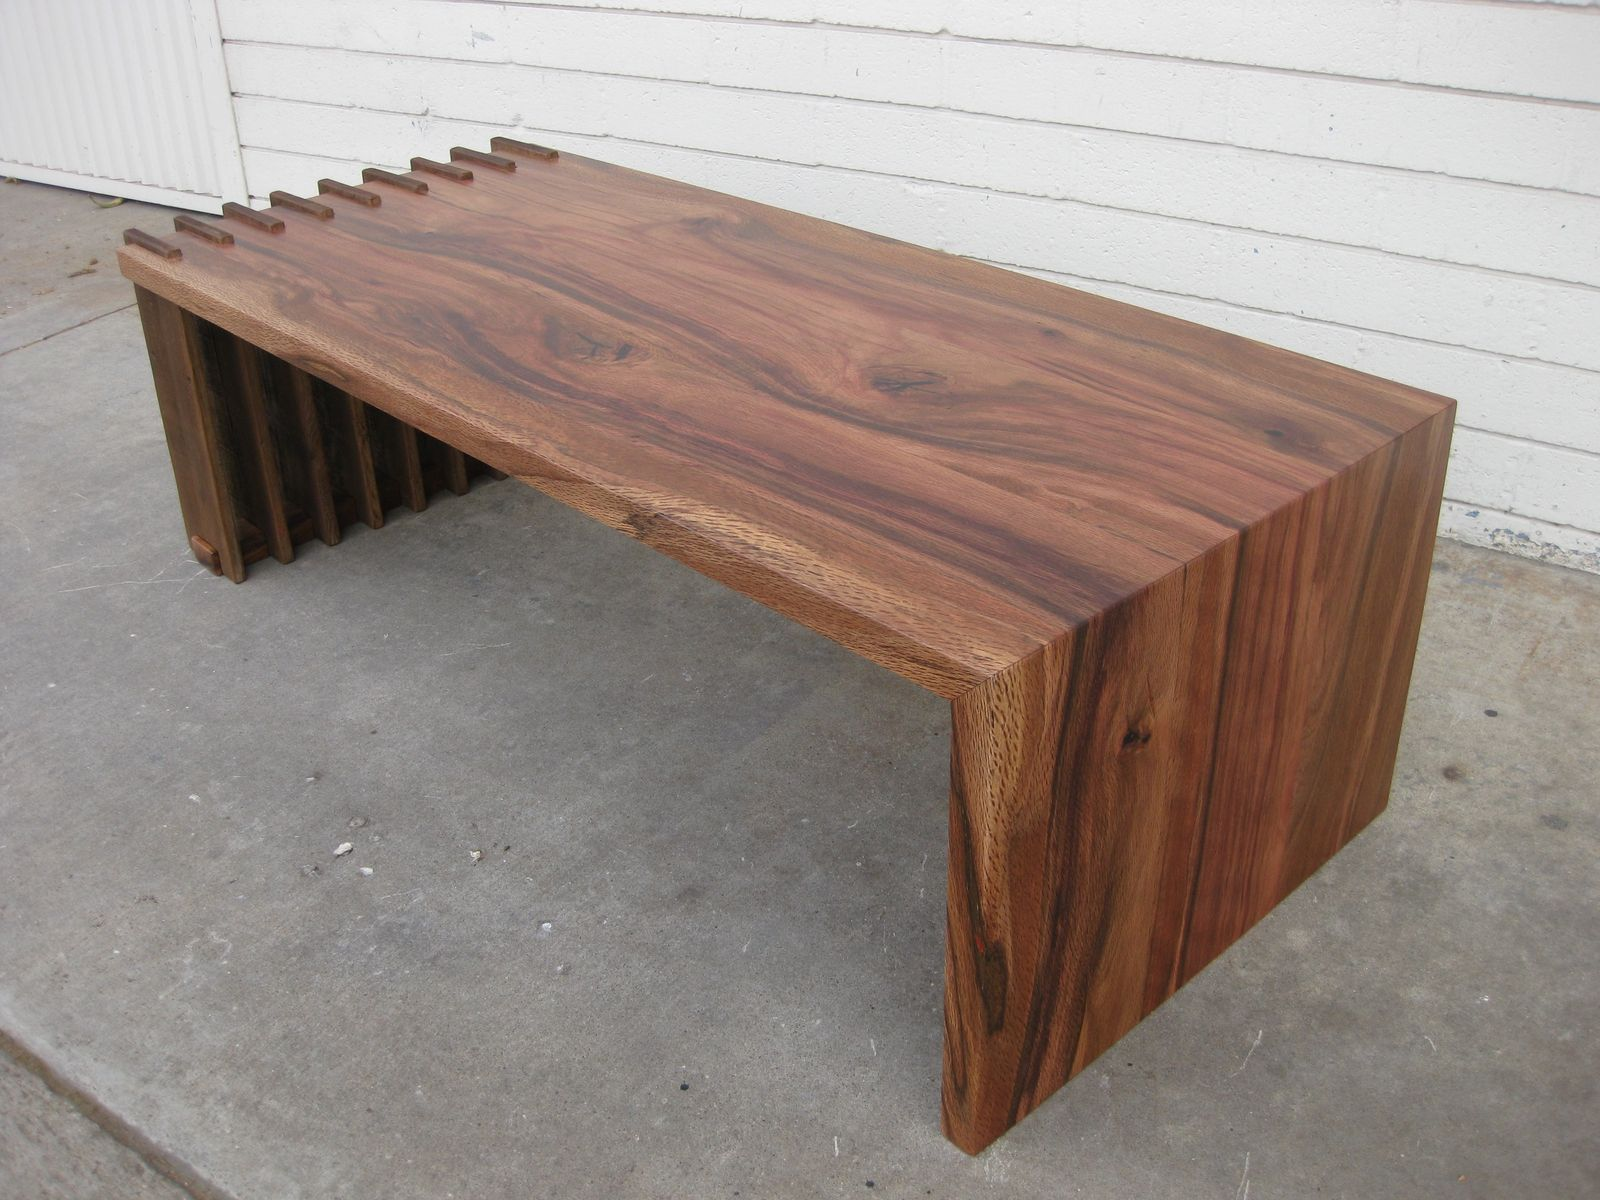 Custom Fenceboard Foldover Coffee Table by San Diego Urban Timber